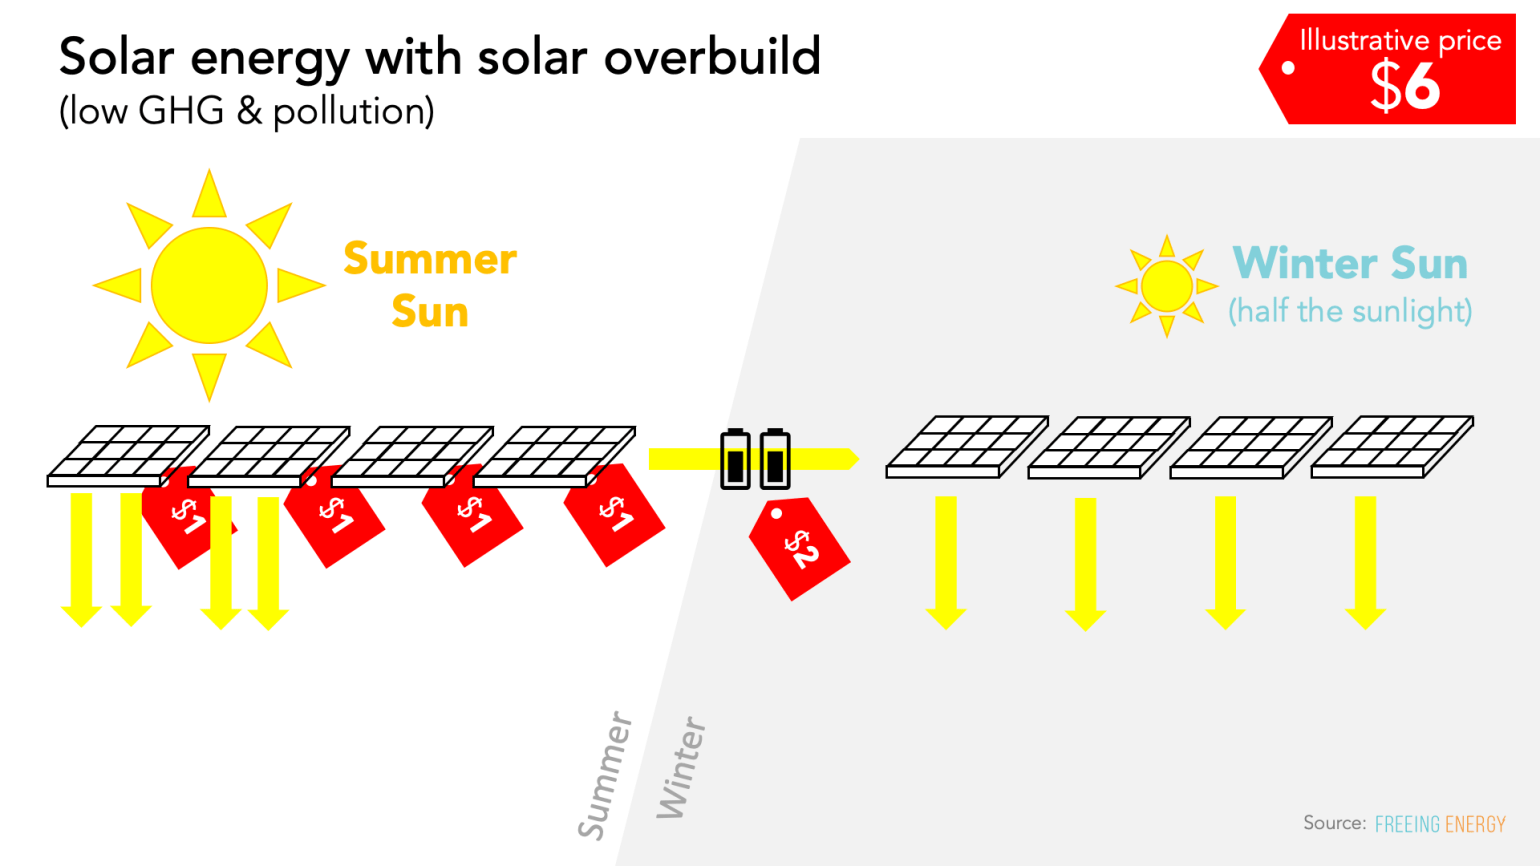 solar energy with solar overbuild - this is a real clean energy grid and the batteries required are affordable